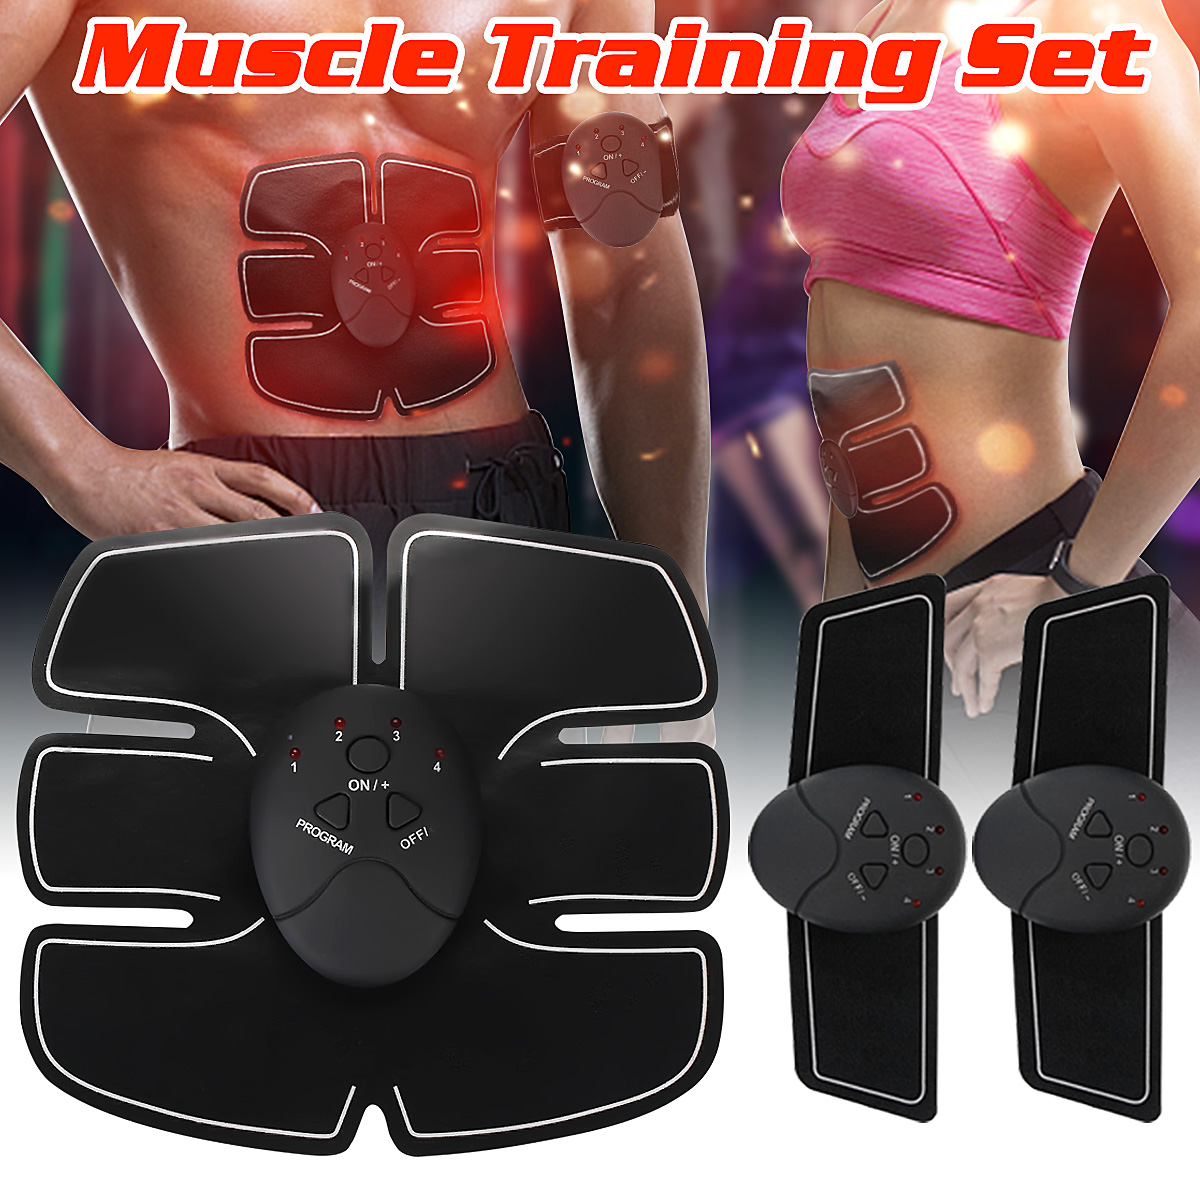 Sixpad Smart ABS Muscle Arm Waist EMS Training Gear Body Exerciser Simulation Abs Fit Muscles Intensive Training sixpad smart abs muscle arm waist ems training gear body exerciser simulation abs fit muscles intensive training